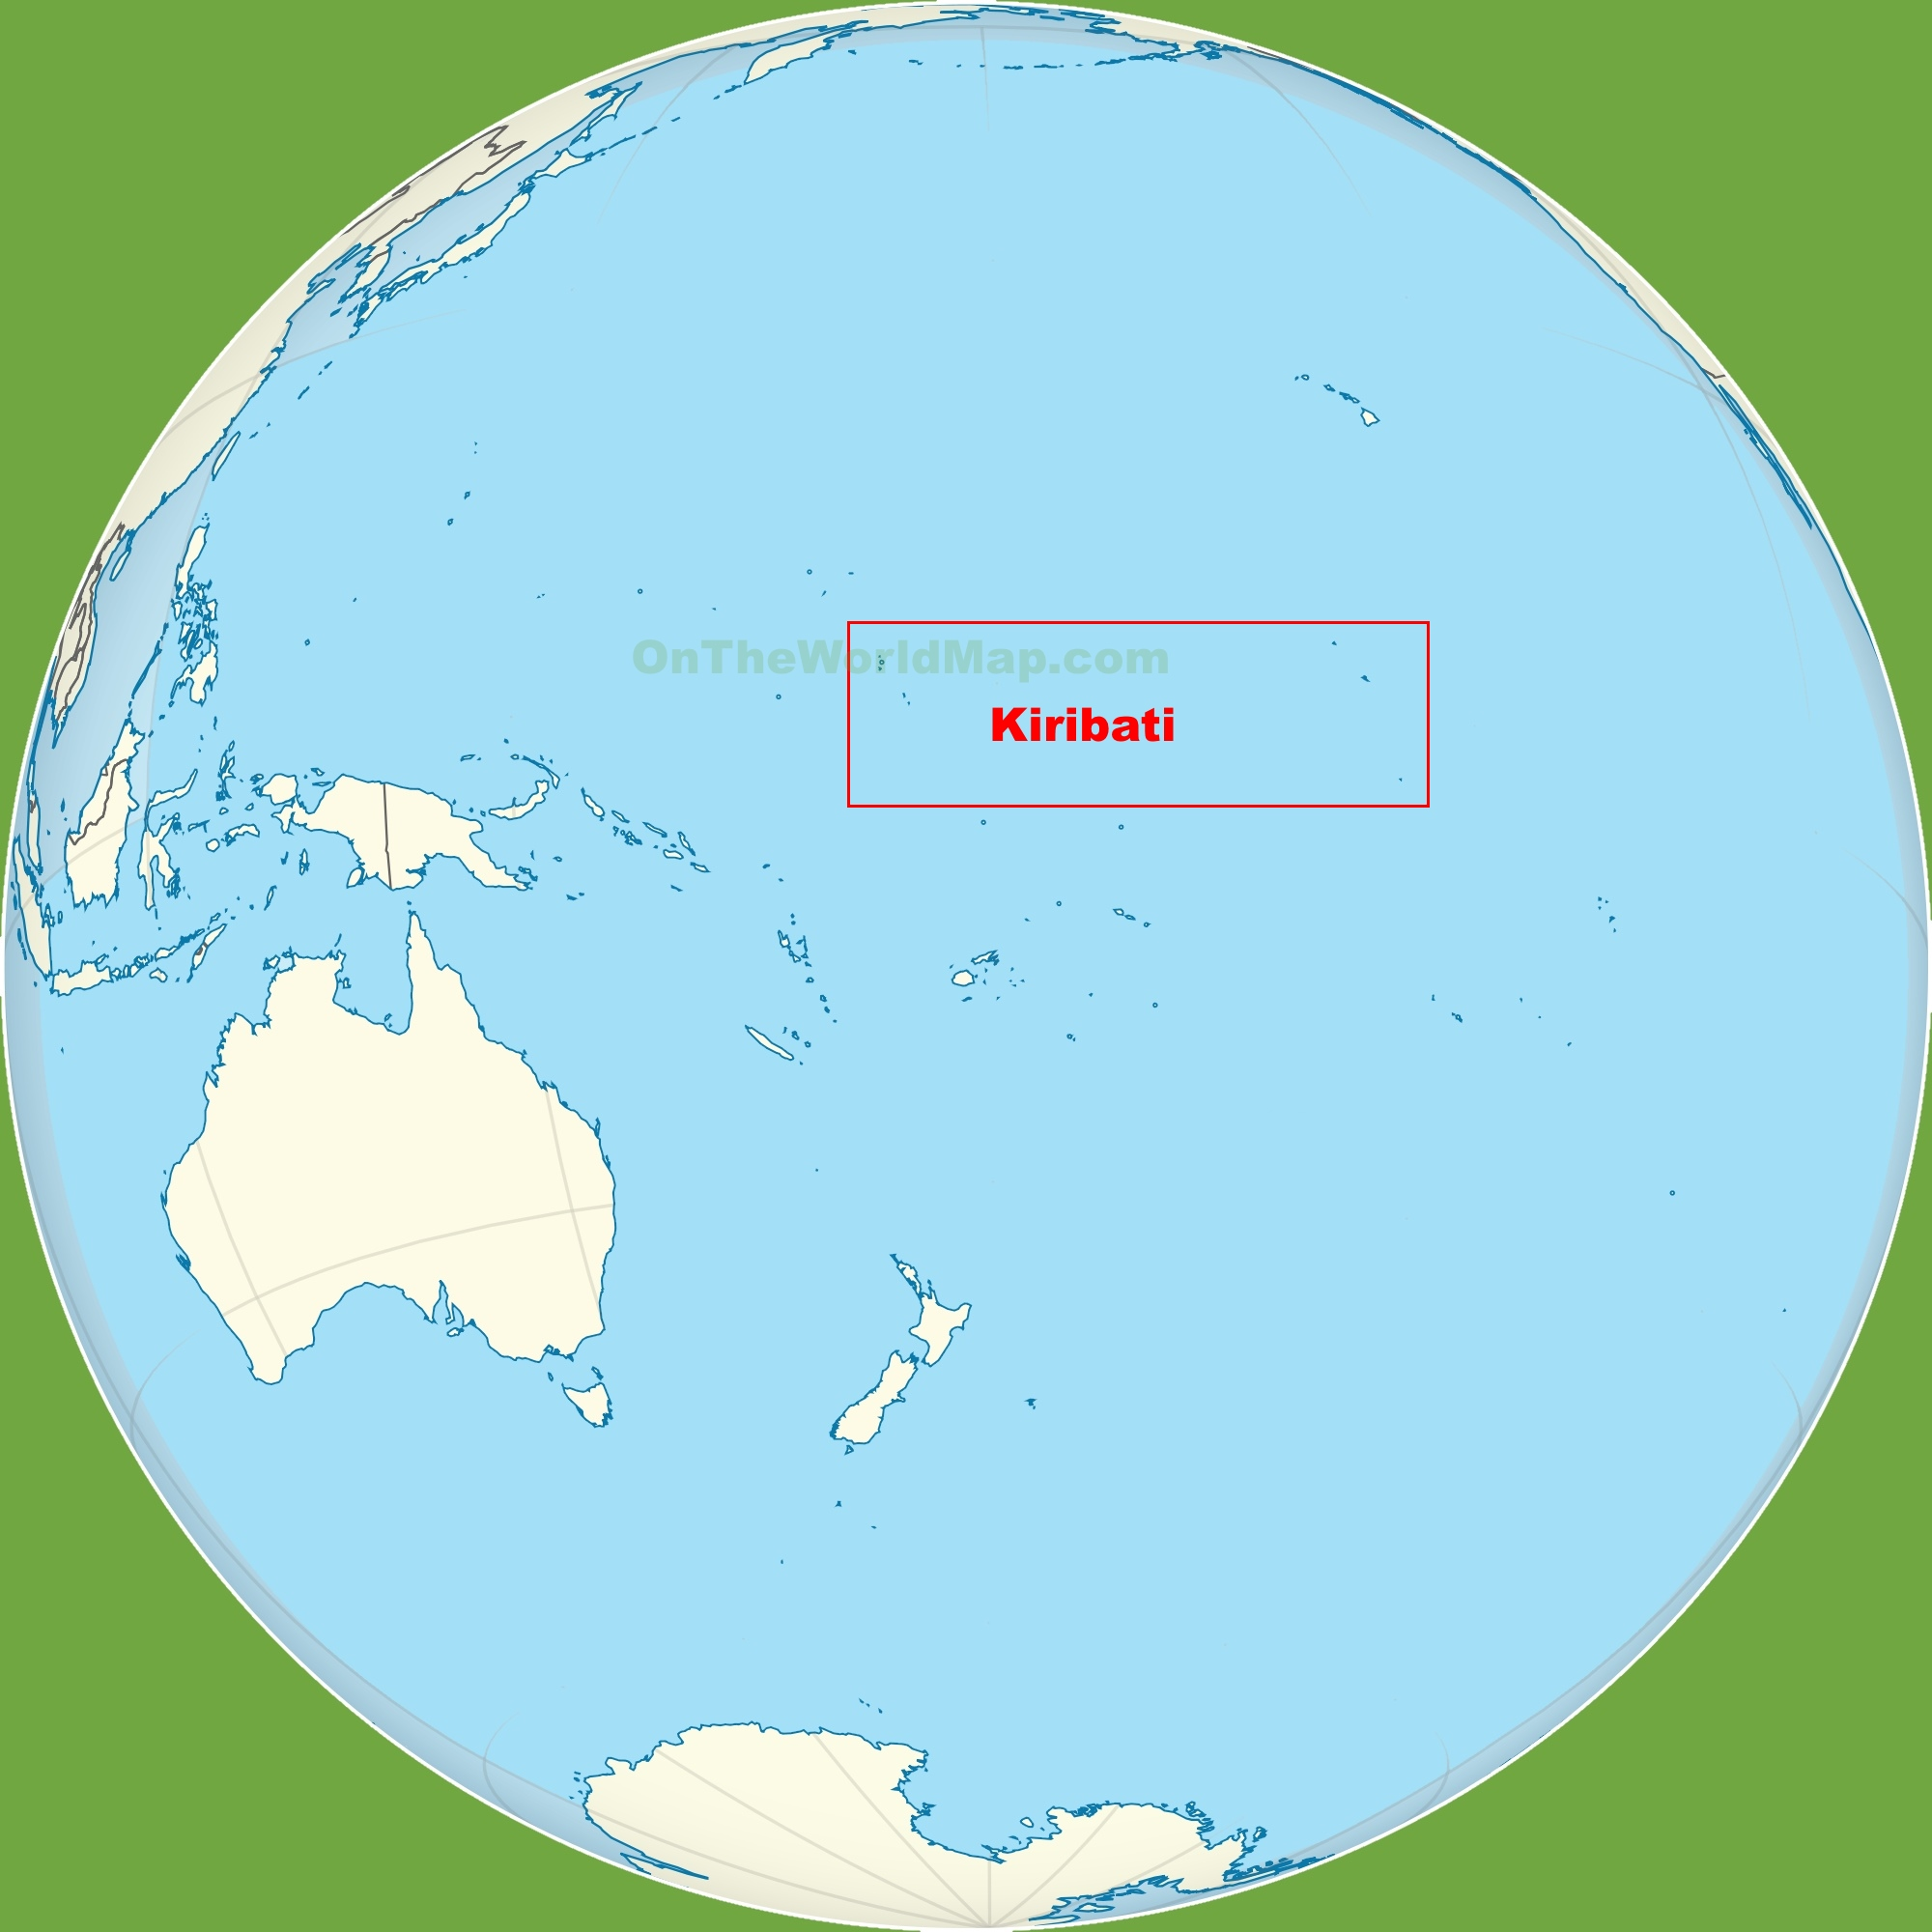 Kiribati location on the Pacific Ocean map